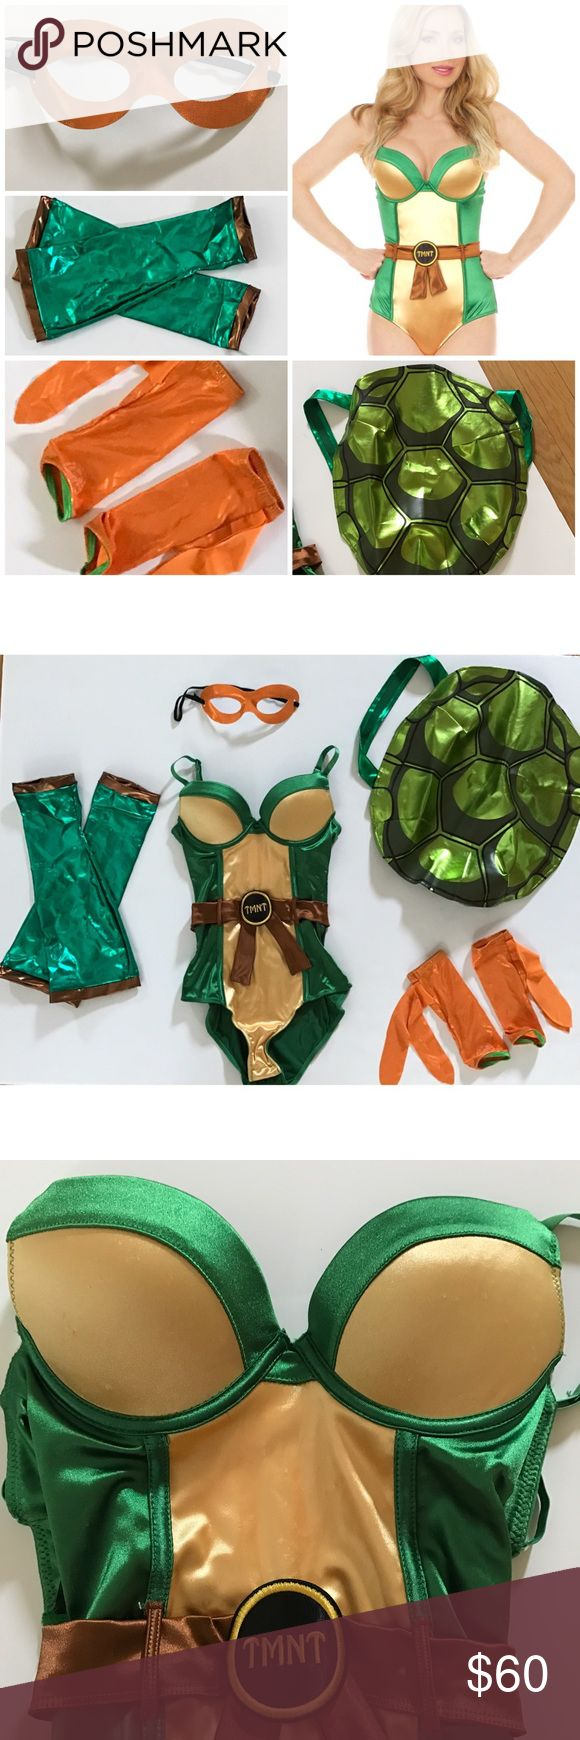 Sexy Ninja Turtle Halloween Costume Complete Set! Unique costume as I put all the different pieces together myself. Comes with: Ninja Turtle Bodysuit (size small has stretch to it and bottom closure) Shell Backpack (used this as a purse for my costume when I was out as it holds your things) Mask, Arm Bands, and Leg Bands. All have stretch to them.   *SMOKE FREE AND PET FREE HOME  *Extremely quick shipping   *Thank you for your support! Other